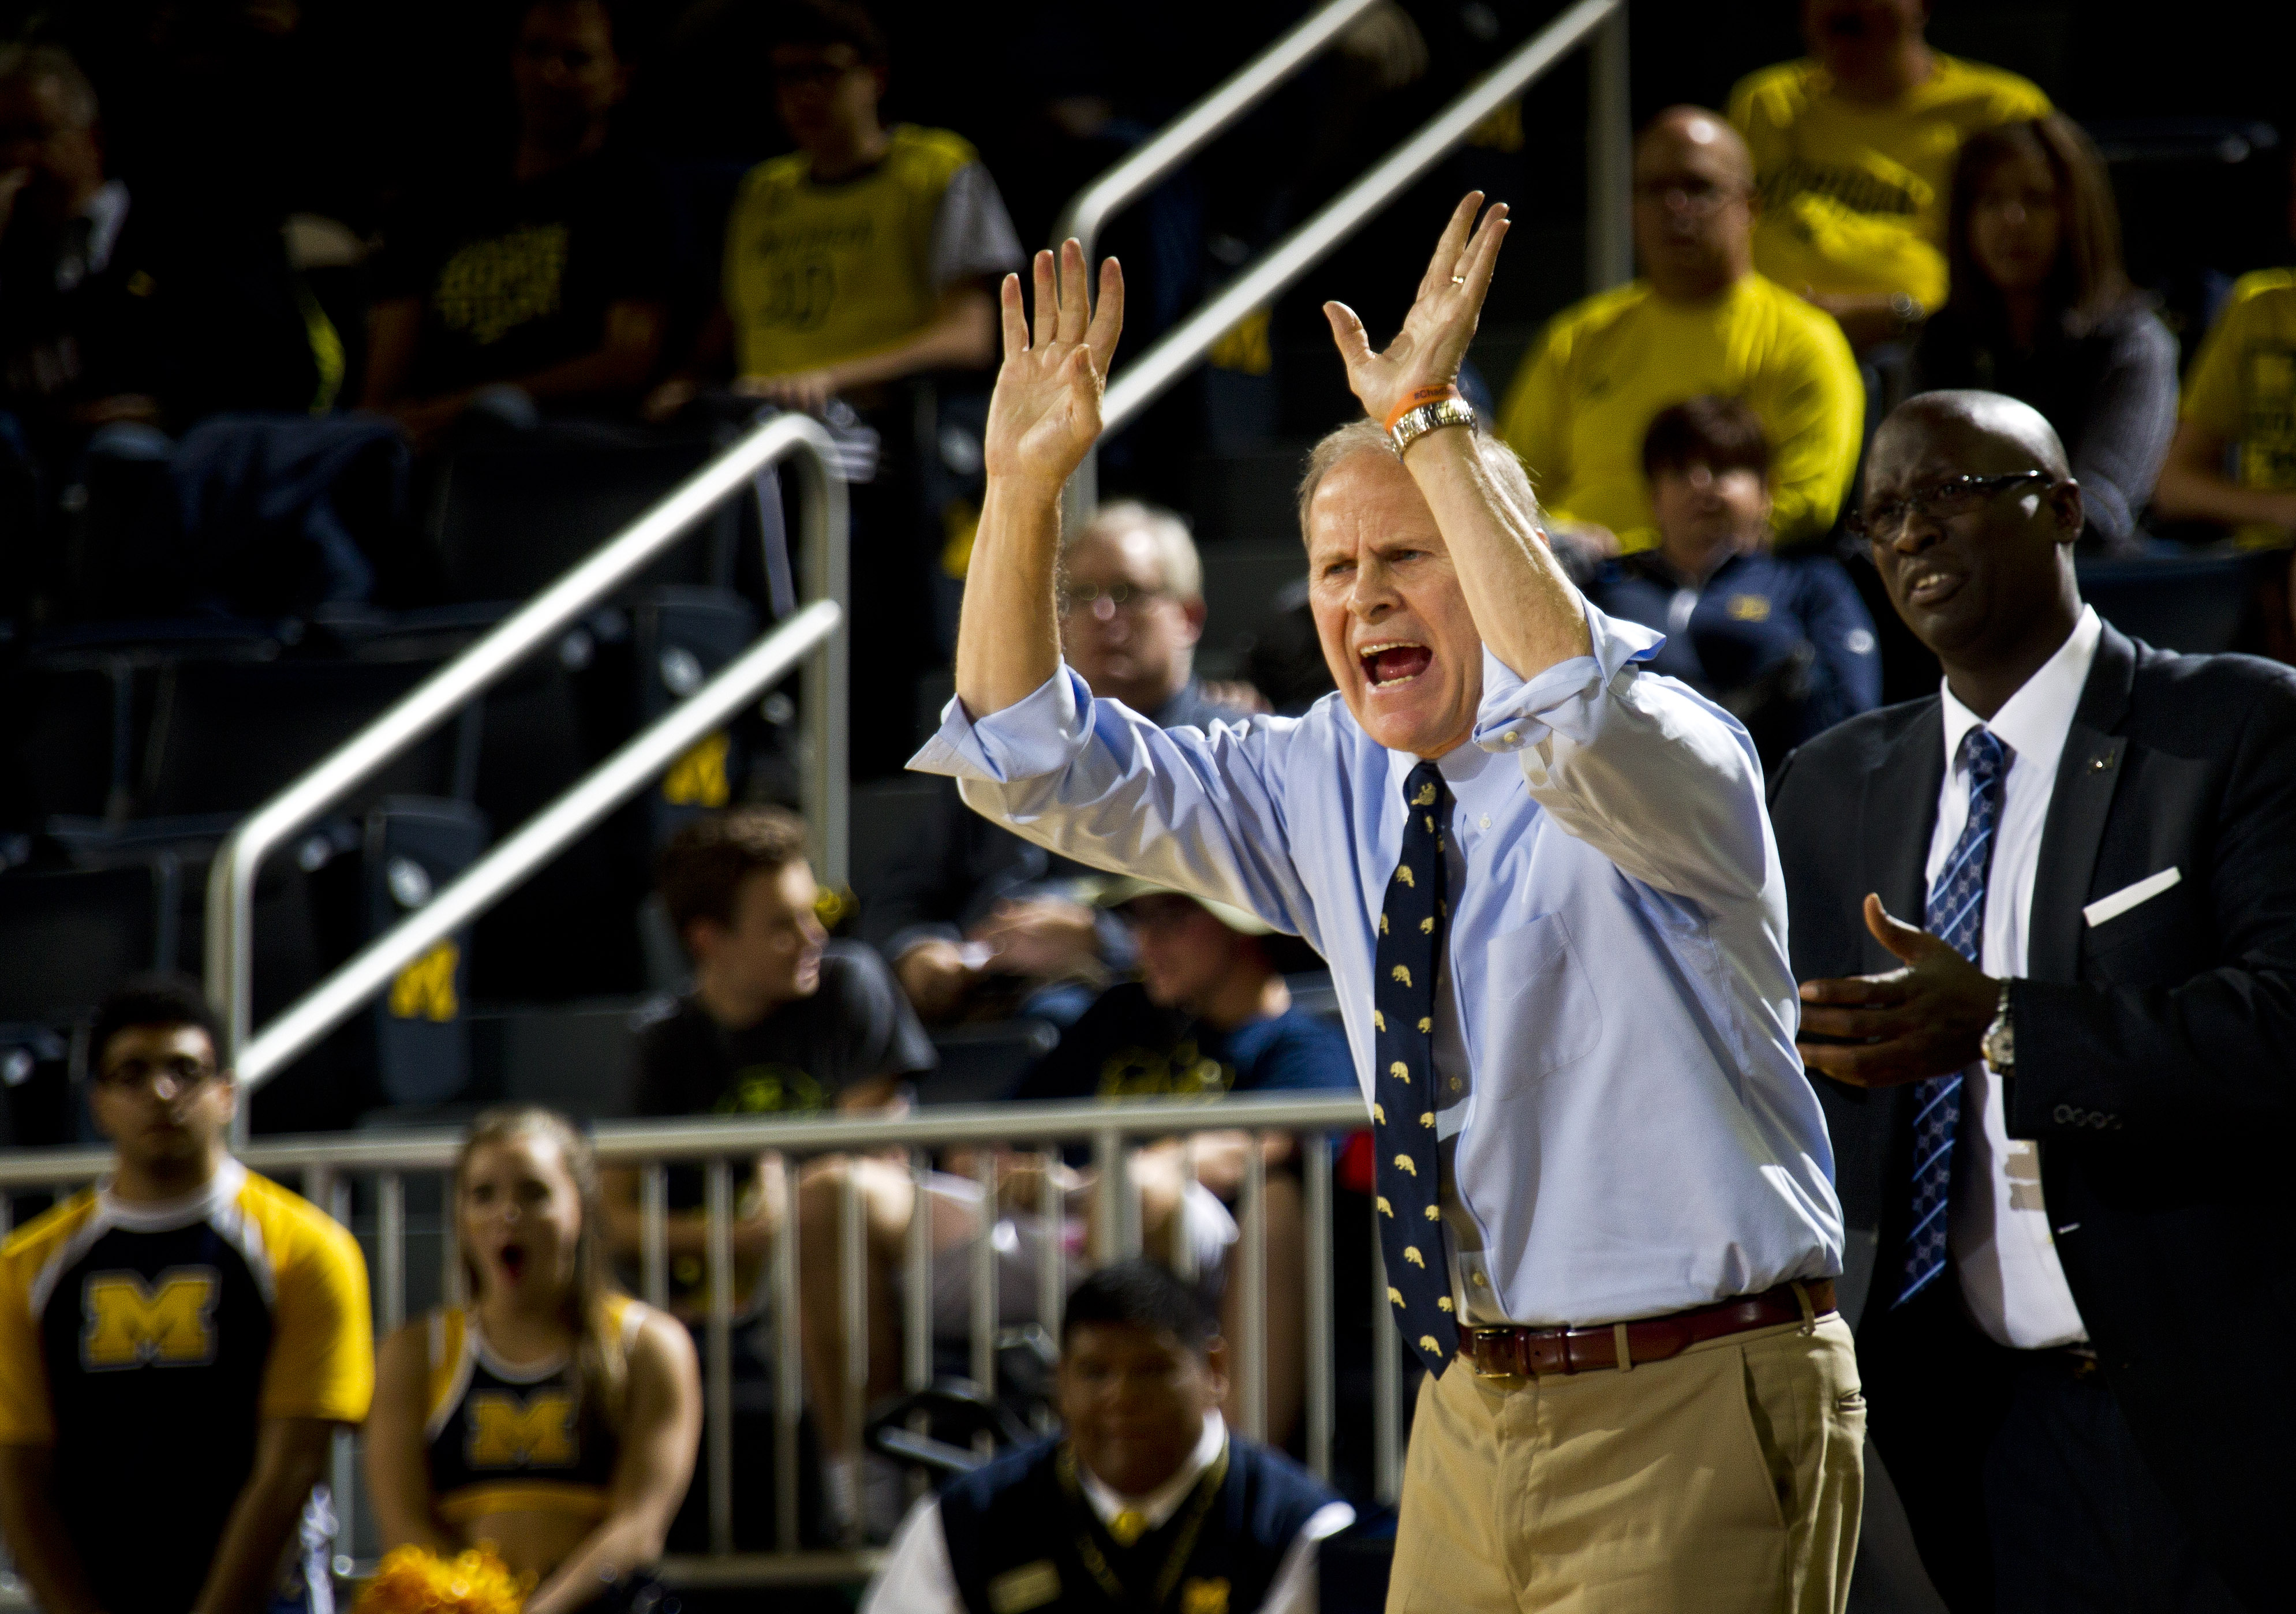 Michigan head coach John Beilein, left, reacts from courtside in the first half of an NCAA college basketball game against Northern Michigan at Crisler Center in Ann Arbor, Mich., Friday, Nov. 13, 2015. (AP Photo/Tony Ding)